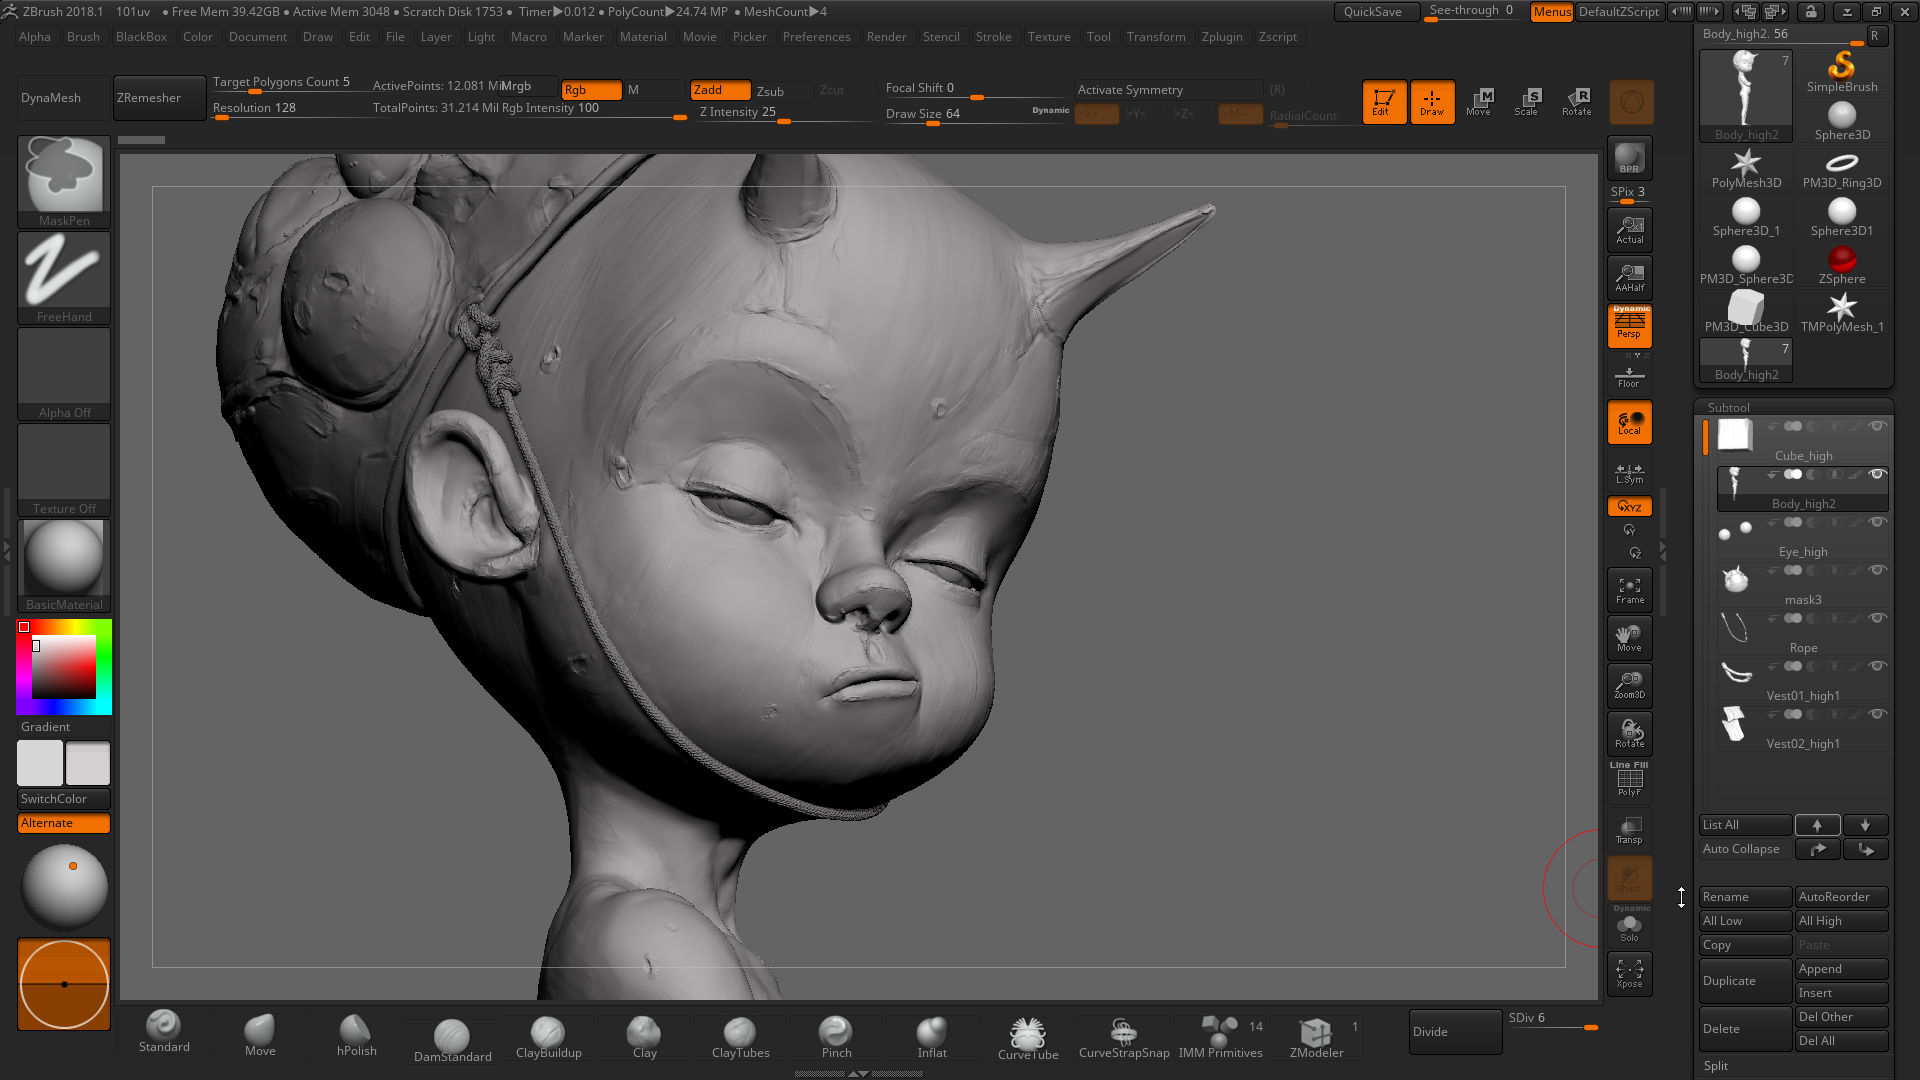 ZBrush-ScreenGrab01.jpg